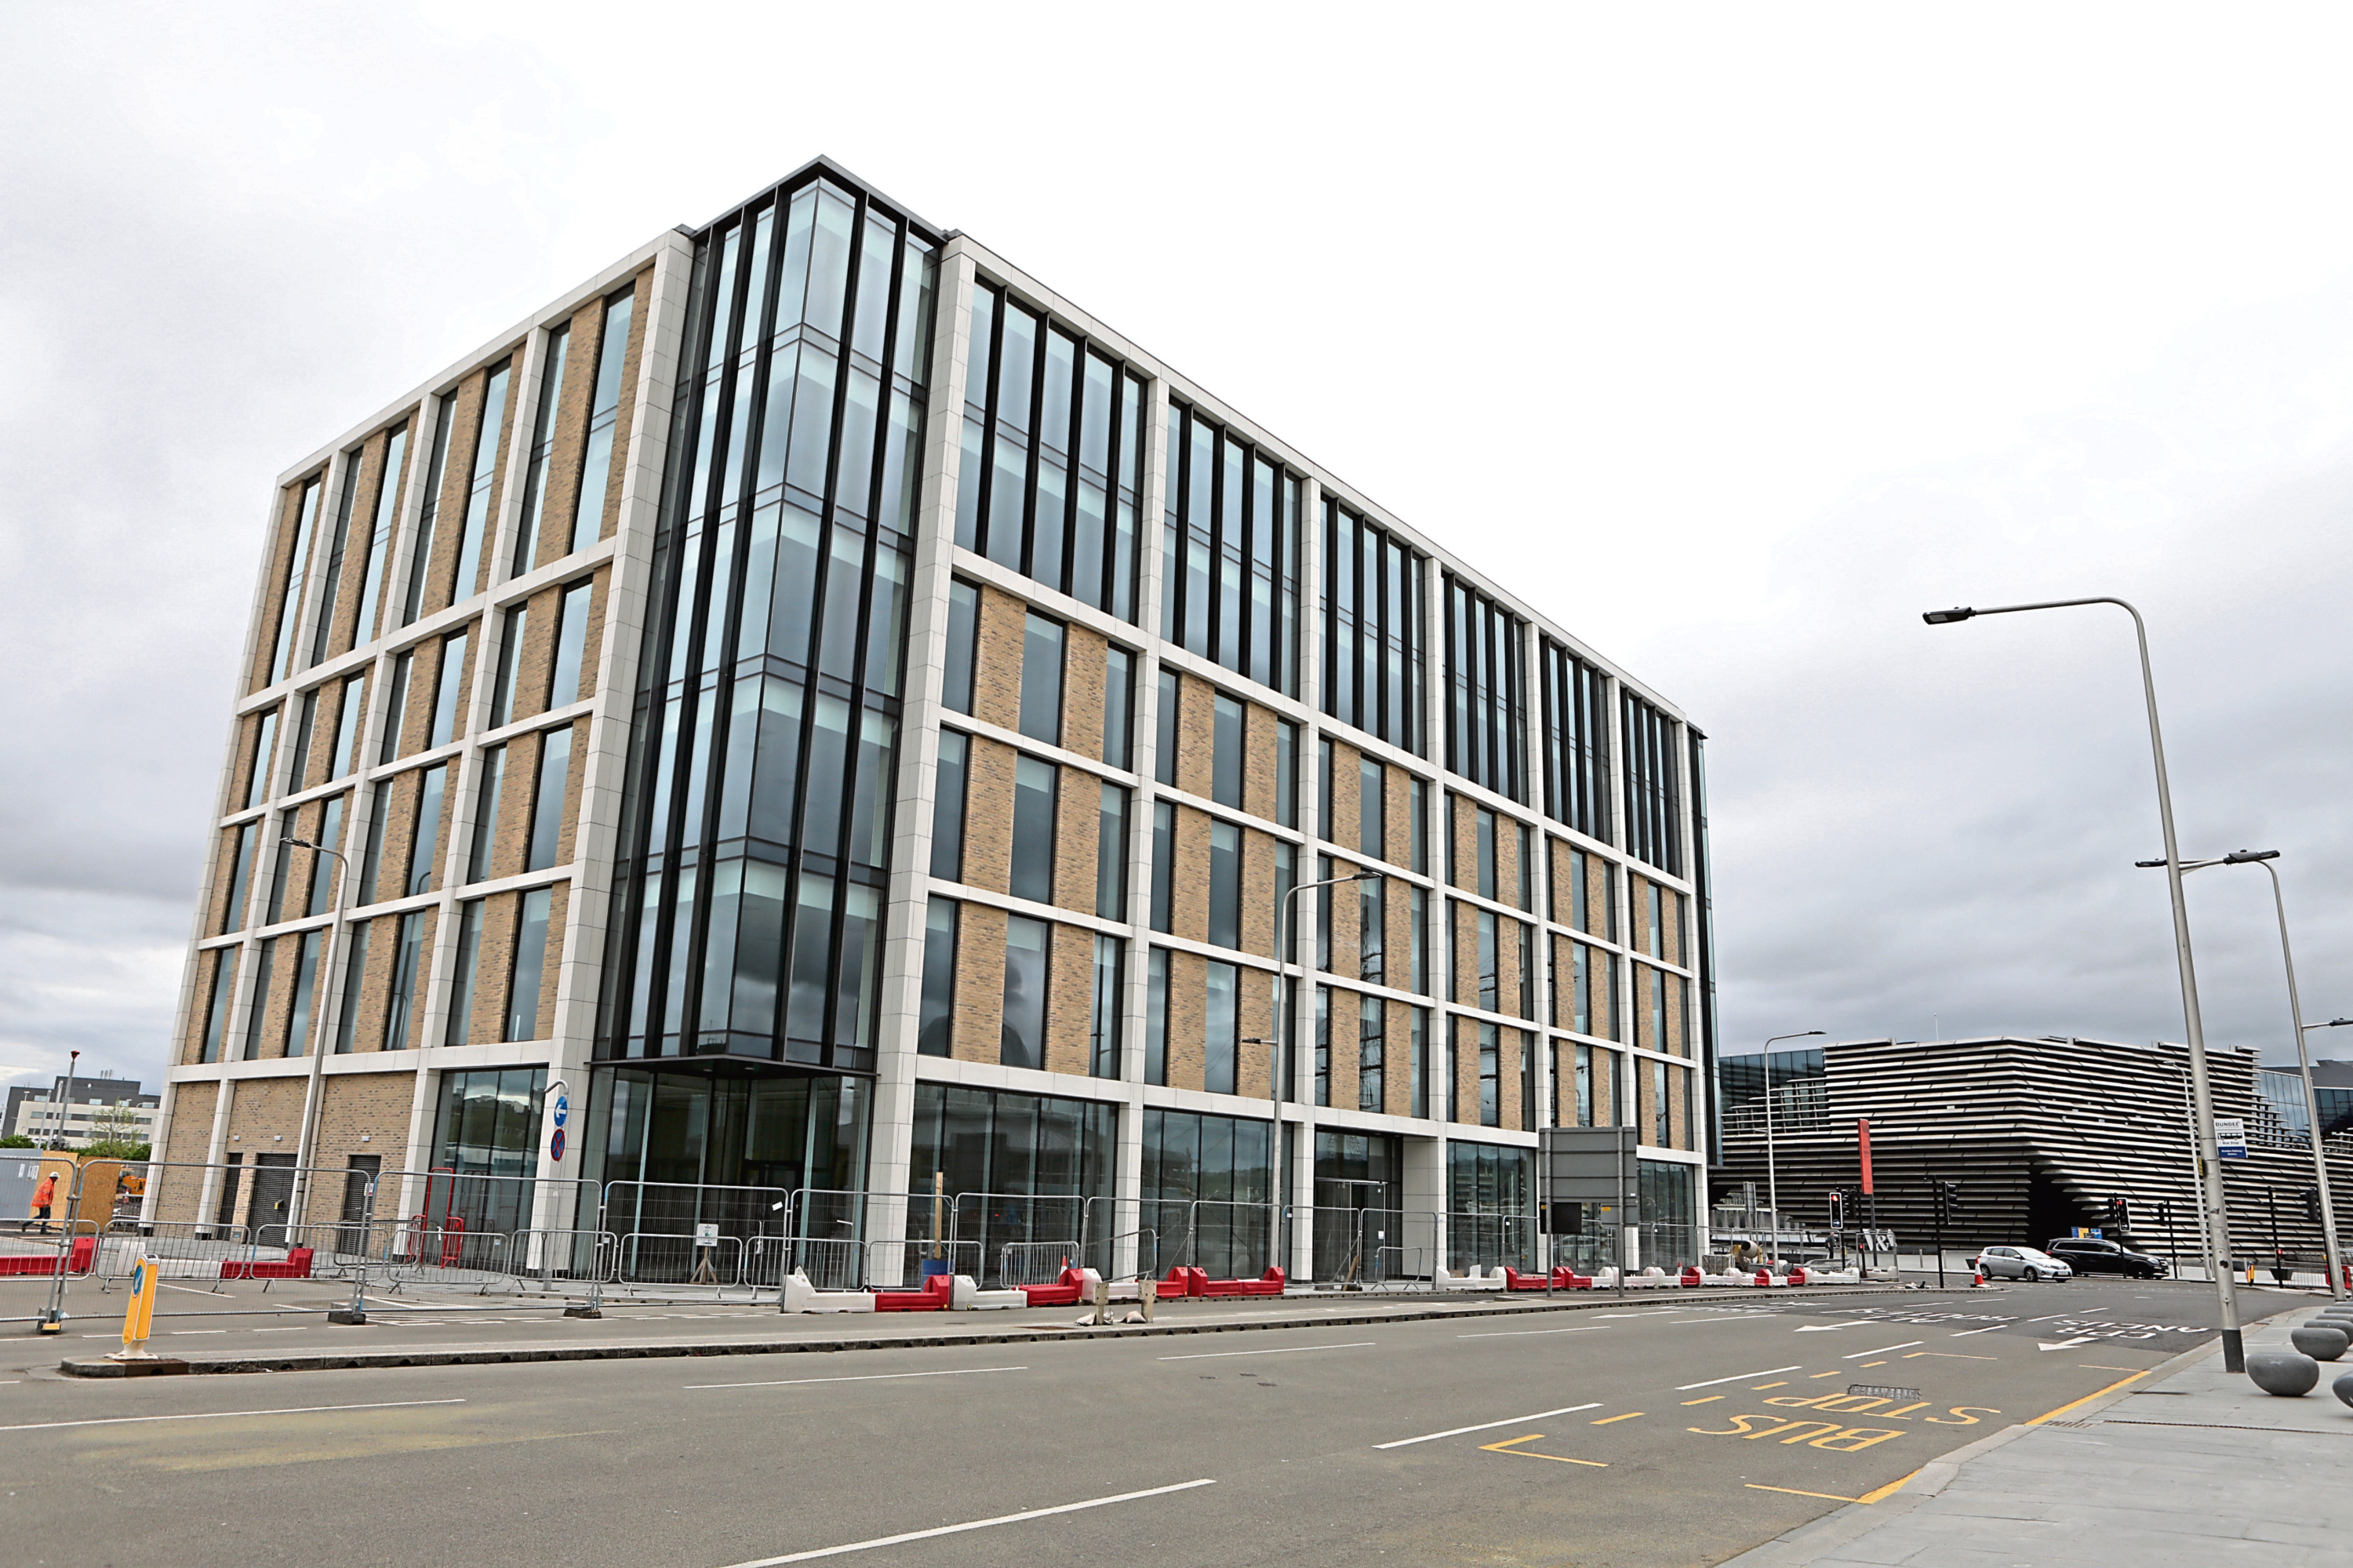 Thousands of pounds have been spent on maintaining the empty Earl Grey Building over 10 months.